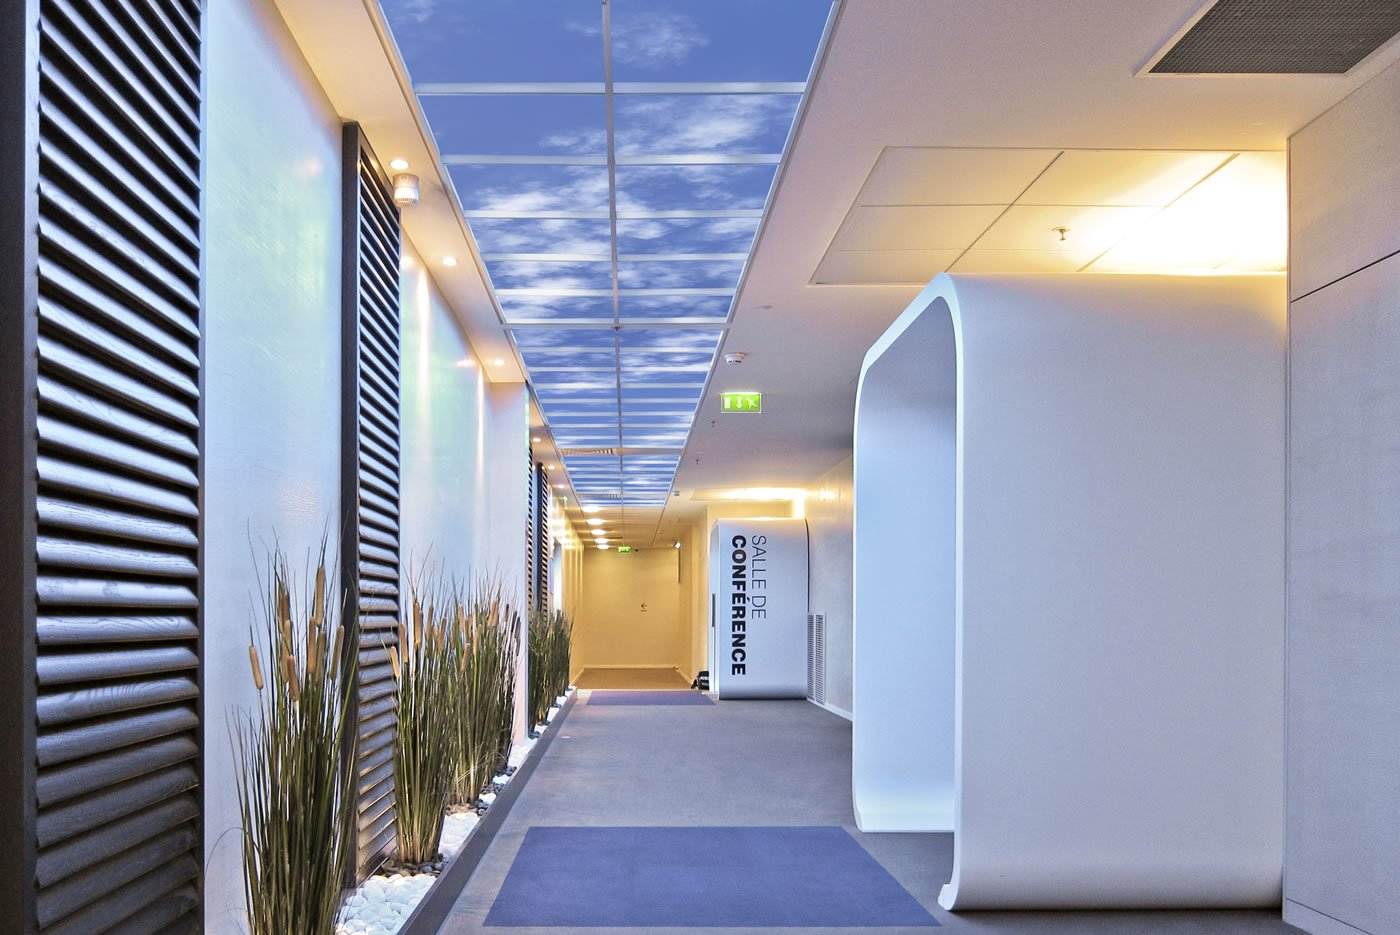 Can an Interior Illusion Improve Well-Being of Building Occupants? -  Propmodo